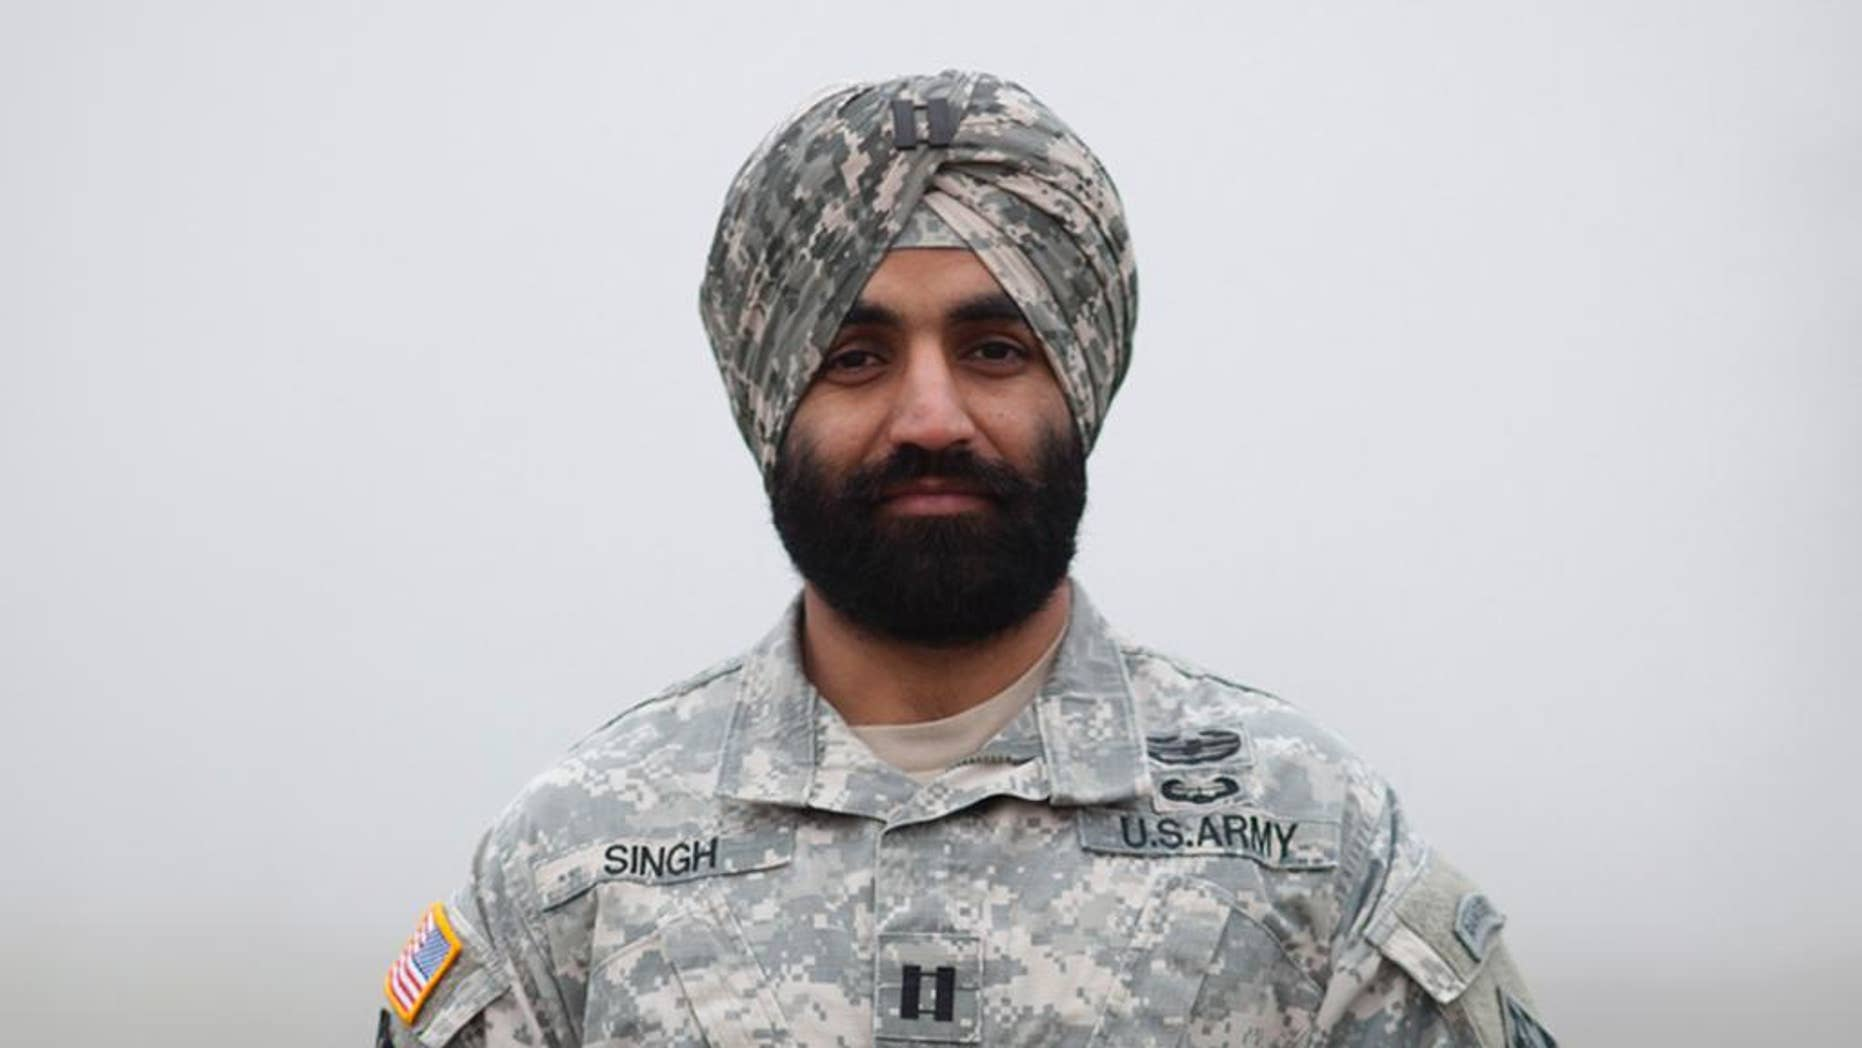 """This photo provided by the Sikh Coalition shows Army Capt. Simratpal Singh. When Singh entered the U.S. Military Academy at West Point back in 2006, he did something he thought he would never have to: shave his beard. """"One of the hardest things I had to do was look in the mirror every day and shave,"""" said Singh, whose Sikh religion requires men to grow beards as an article of faith. Now Singh and three Army enlistees have won permission to wear beards and turbans after filing federal lawsuits that seek to force the Pentagon to accommodate those who wear beards for religious reasons. Singh, won an administrative exception under an Army policy that allows exemptions to the no-beard policy on a case-by-case basis. (Jovelle Tamayo/Sikh Coalition via AP)"""